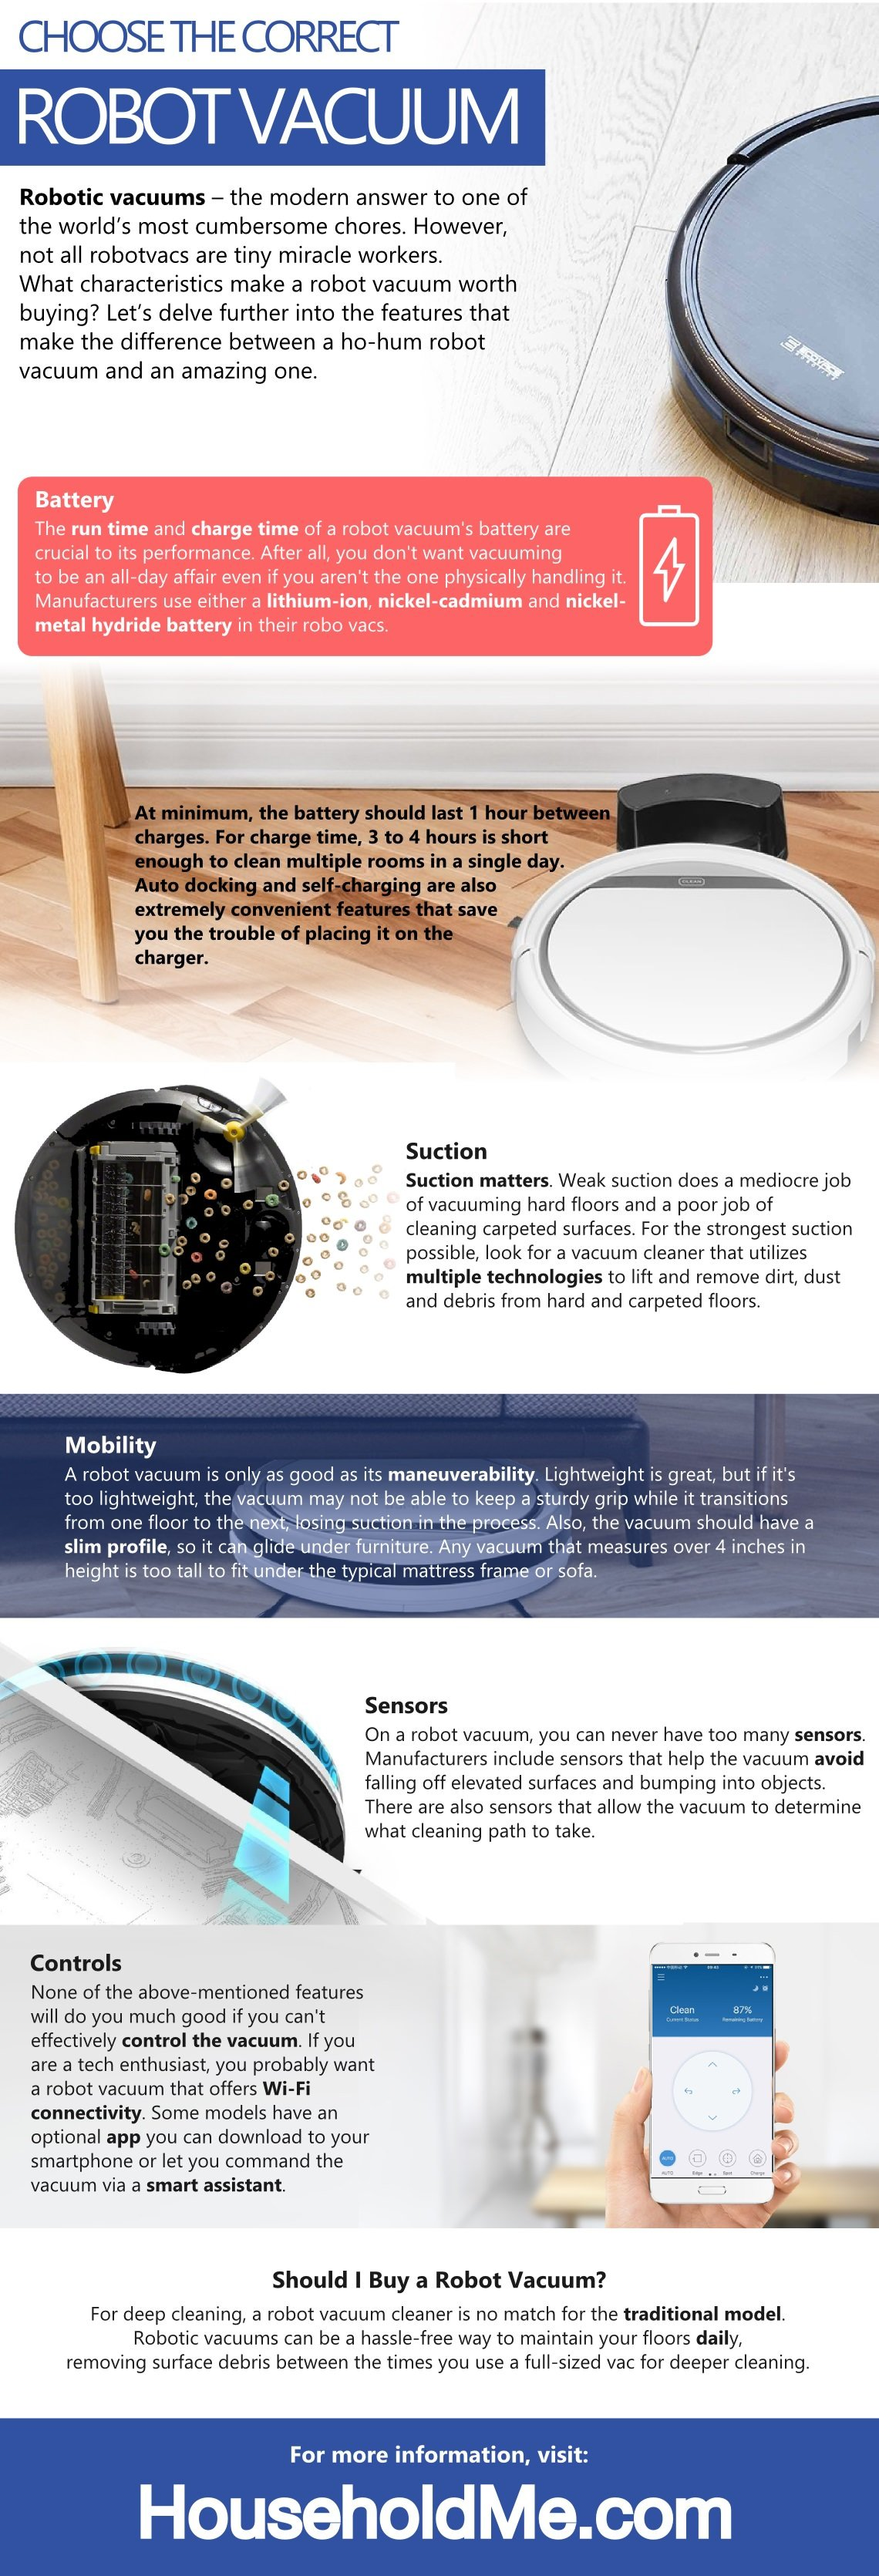 Choose the Correct Robot Vacuum Infographic